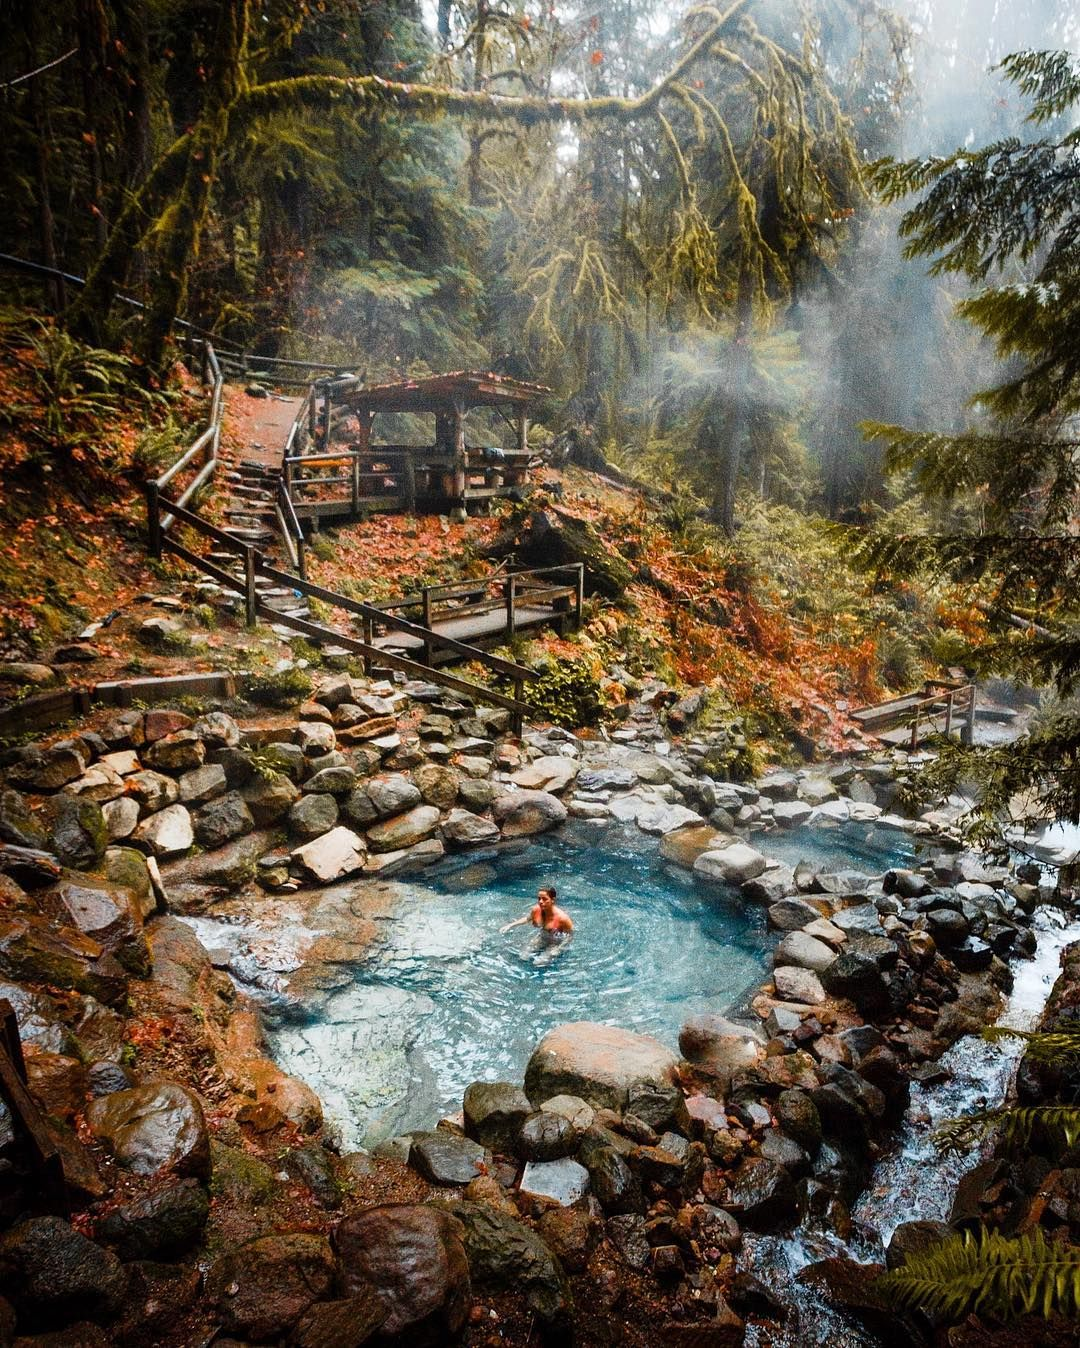 Hot Springs in Oregon, USA - #usatravel roadtrip #traveldestinations | Incredible places